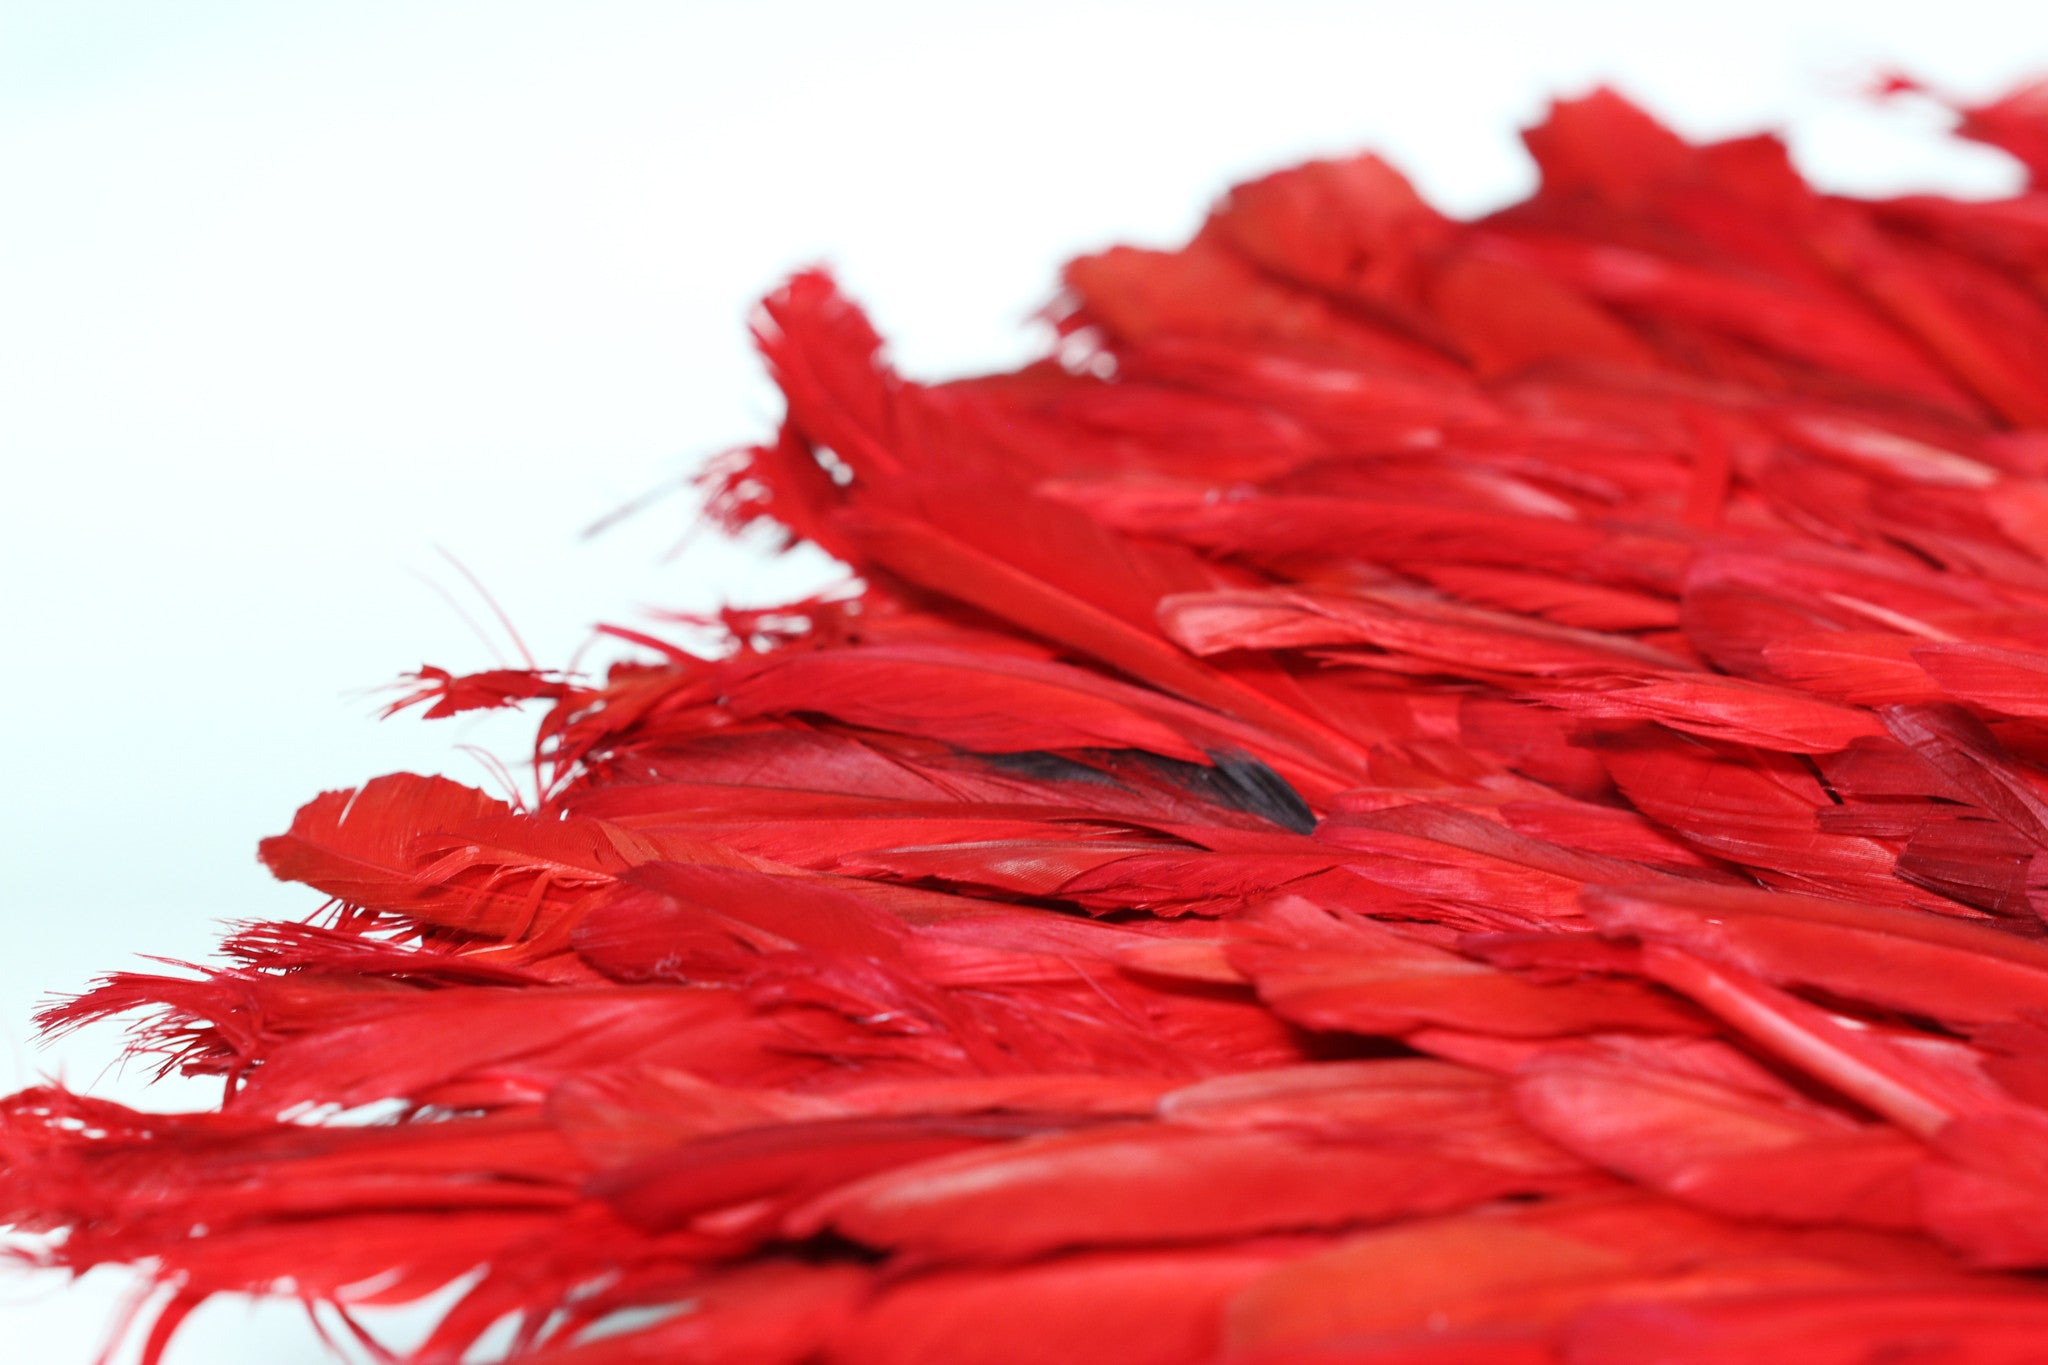 juju hat juju hats Red Velvet color african juju hat wall decor feather headdress for sale cameroon wall hanging bamileke hat